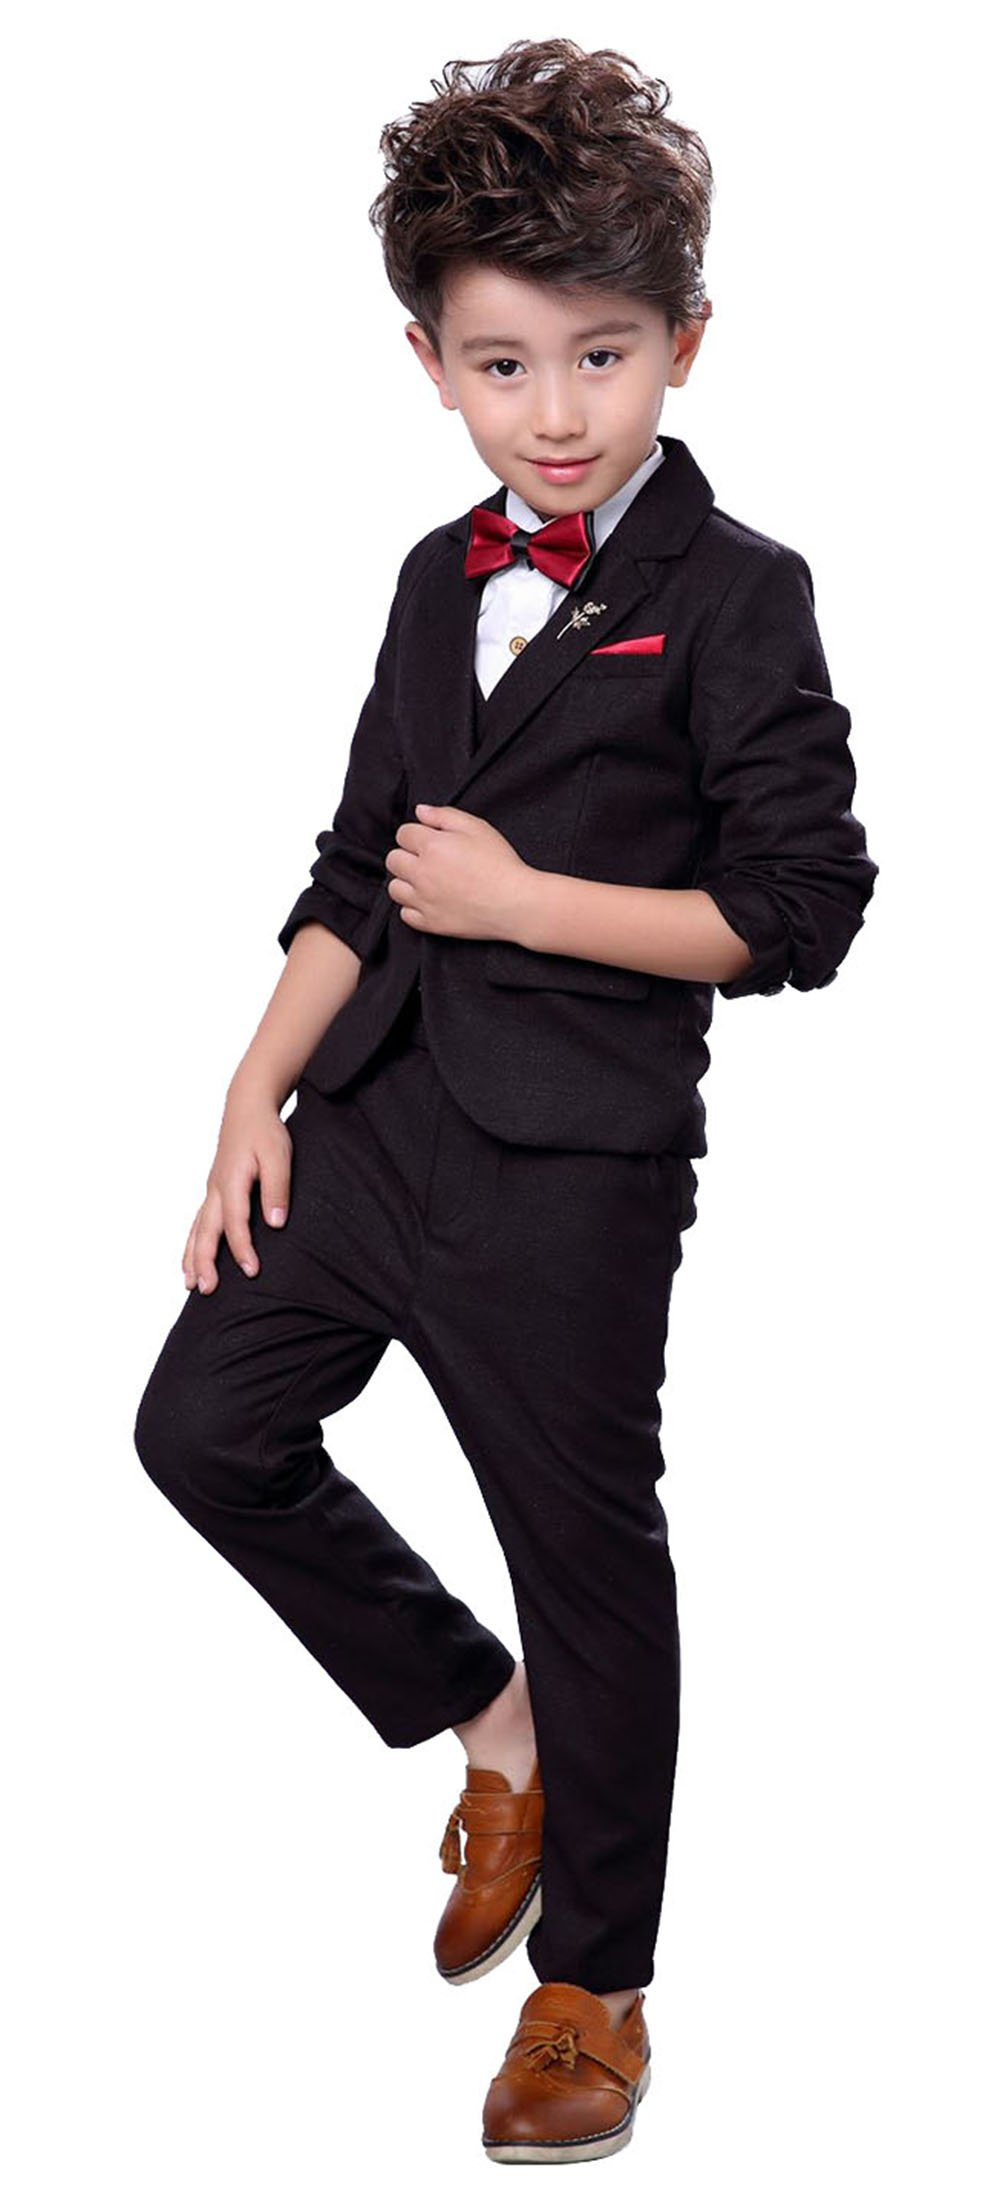 Boys Prom Suit 3 Pieces Plaid Suit Set for Wedding Party Shows Cute Tuxedo Suits Jacket Waistcoat Pants Black 3T